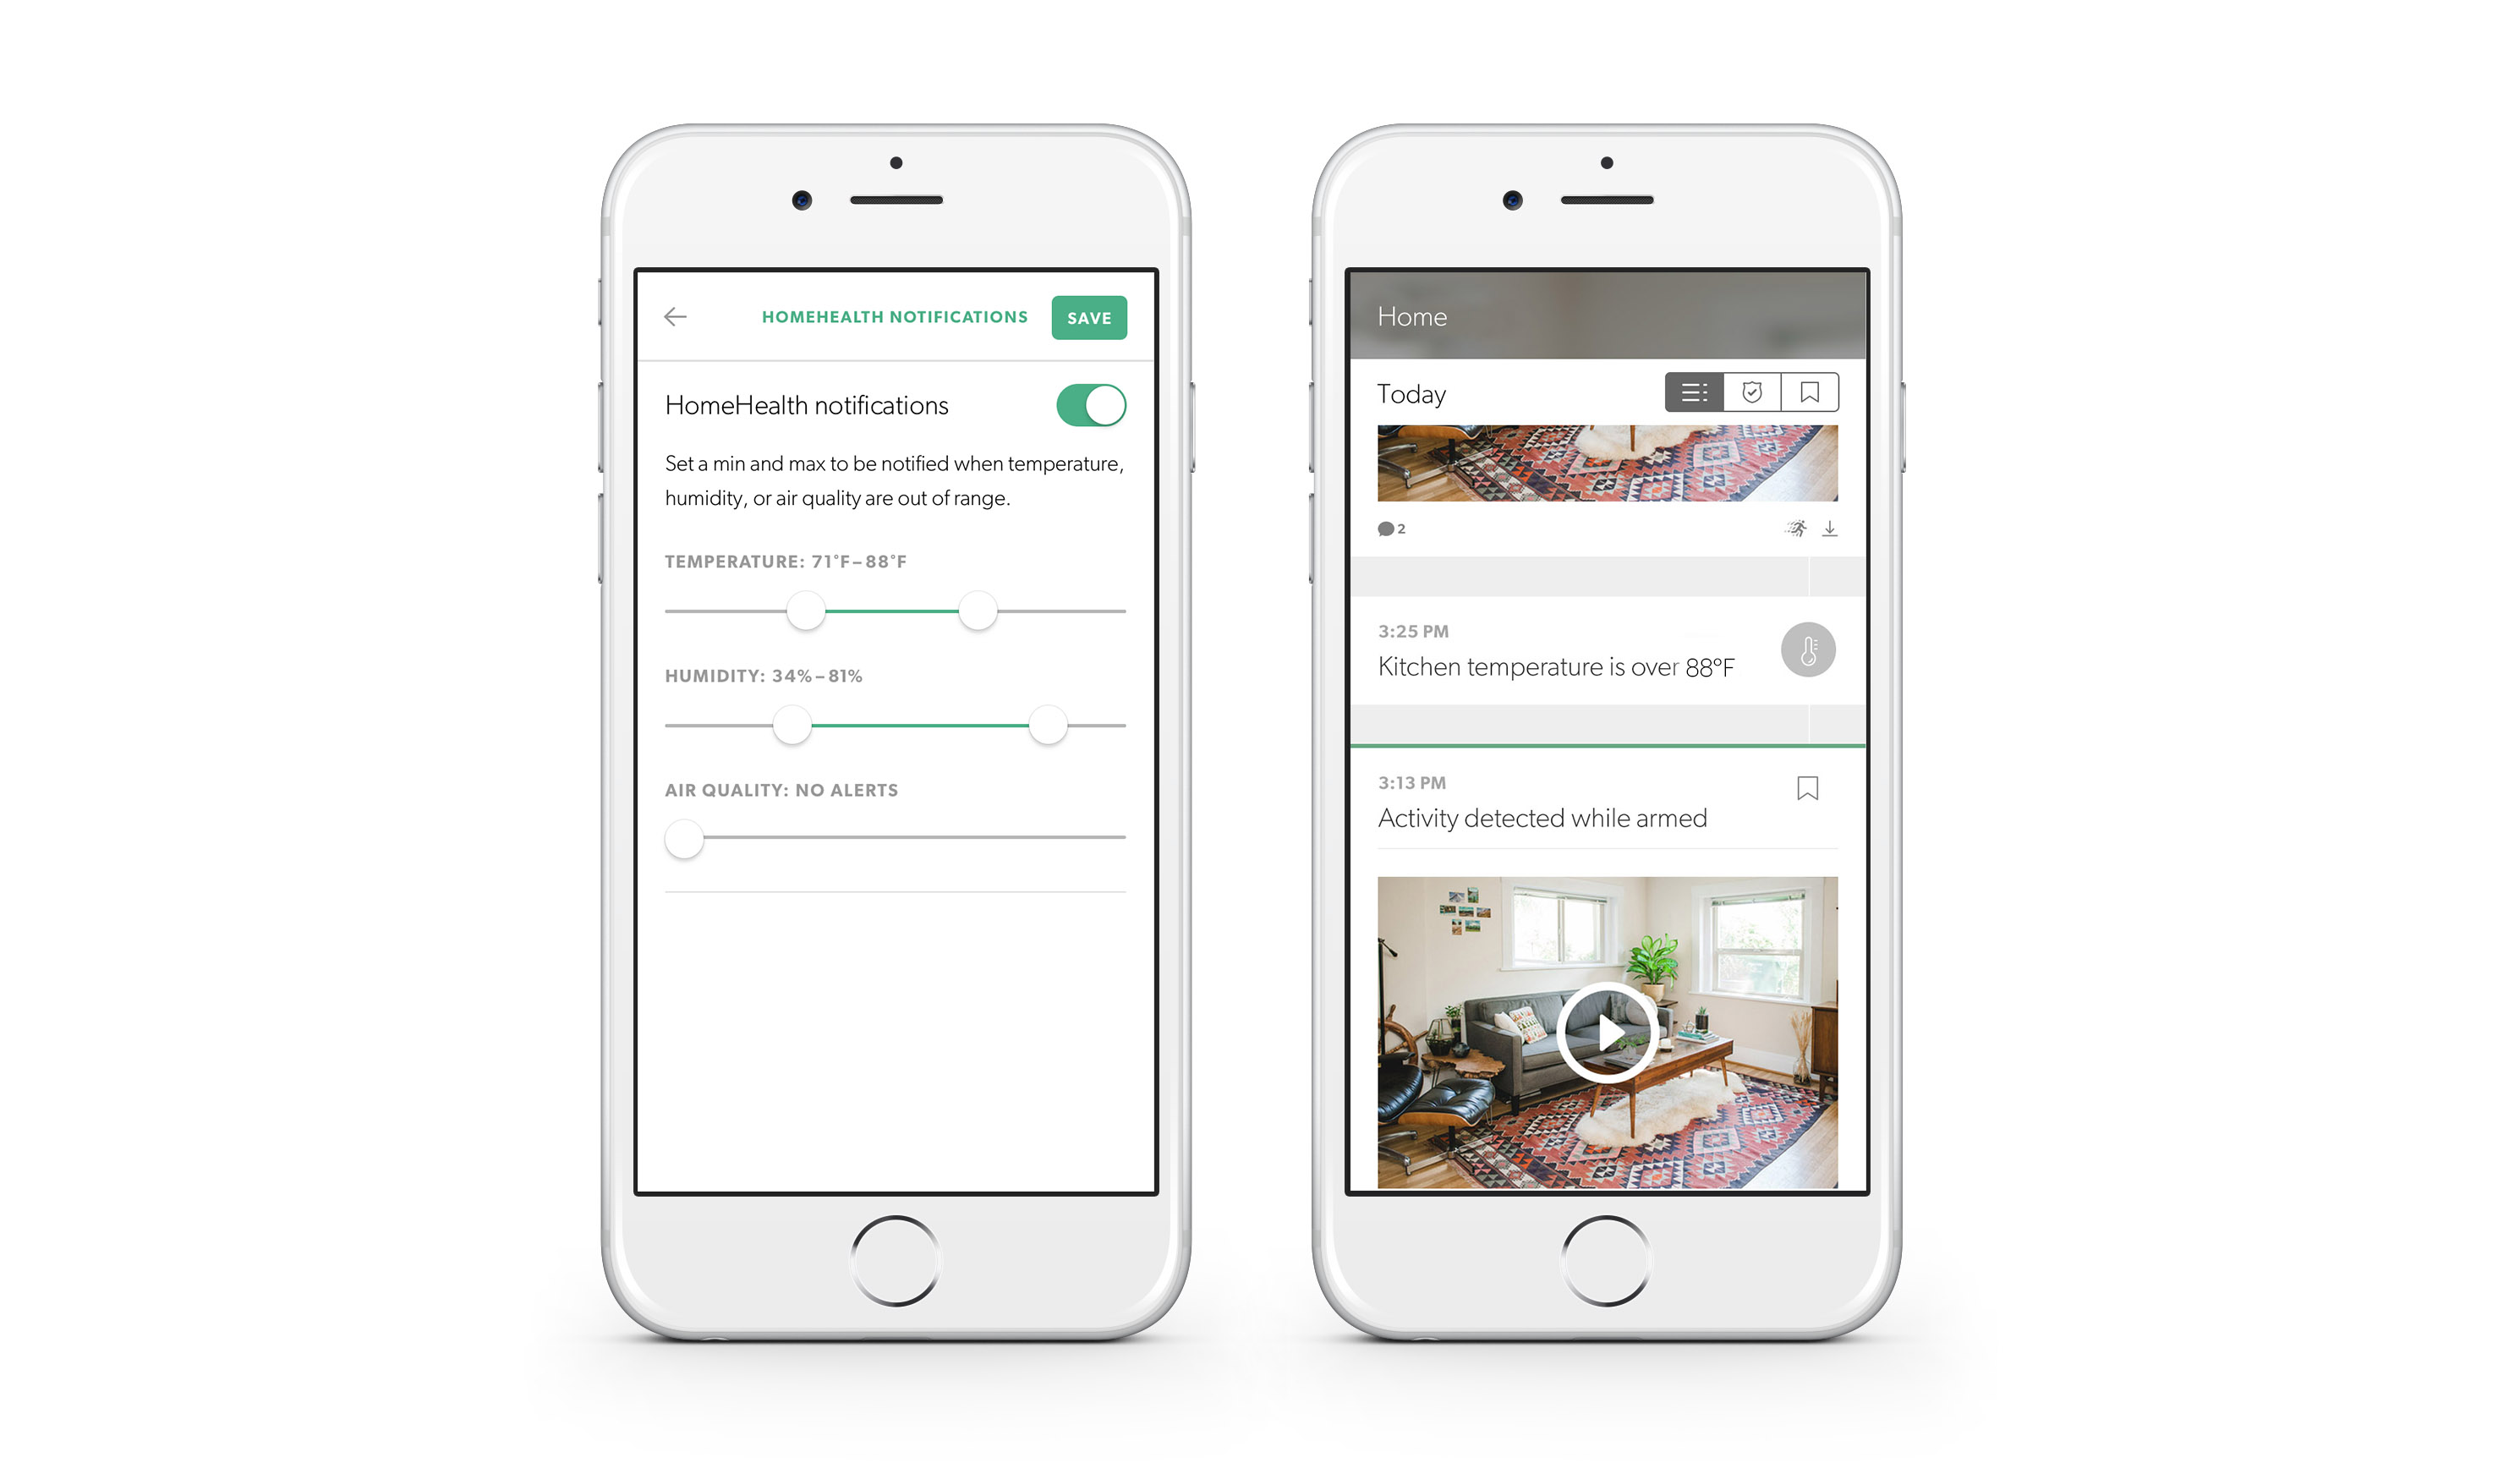 HomeHealth and Offline Notifications